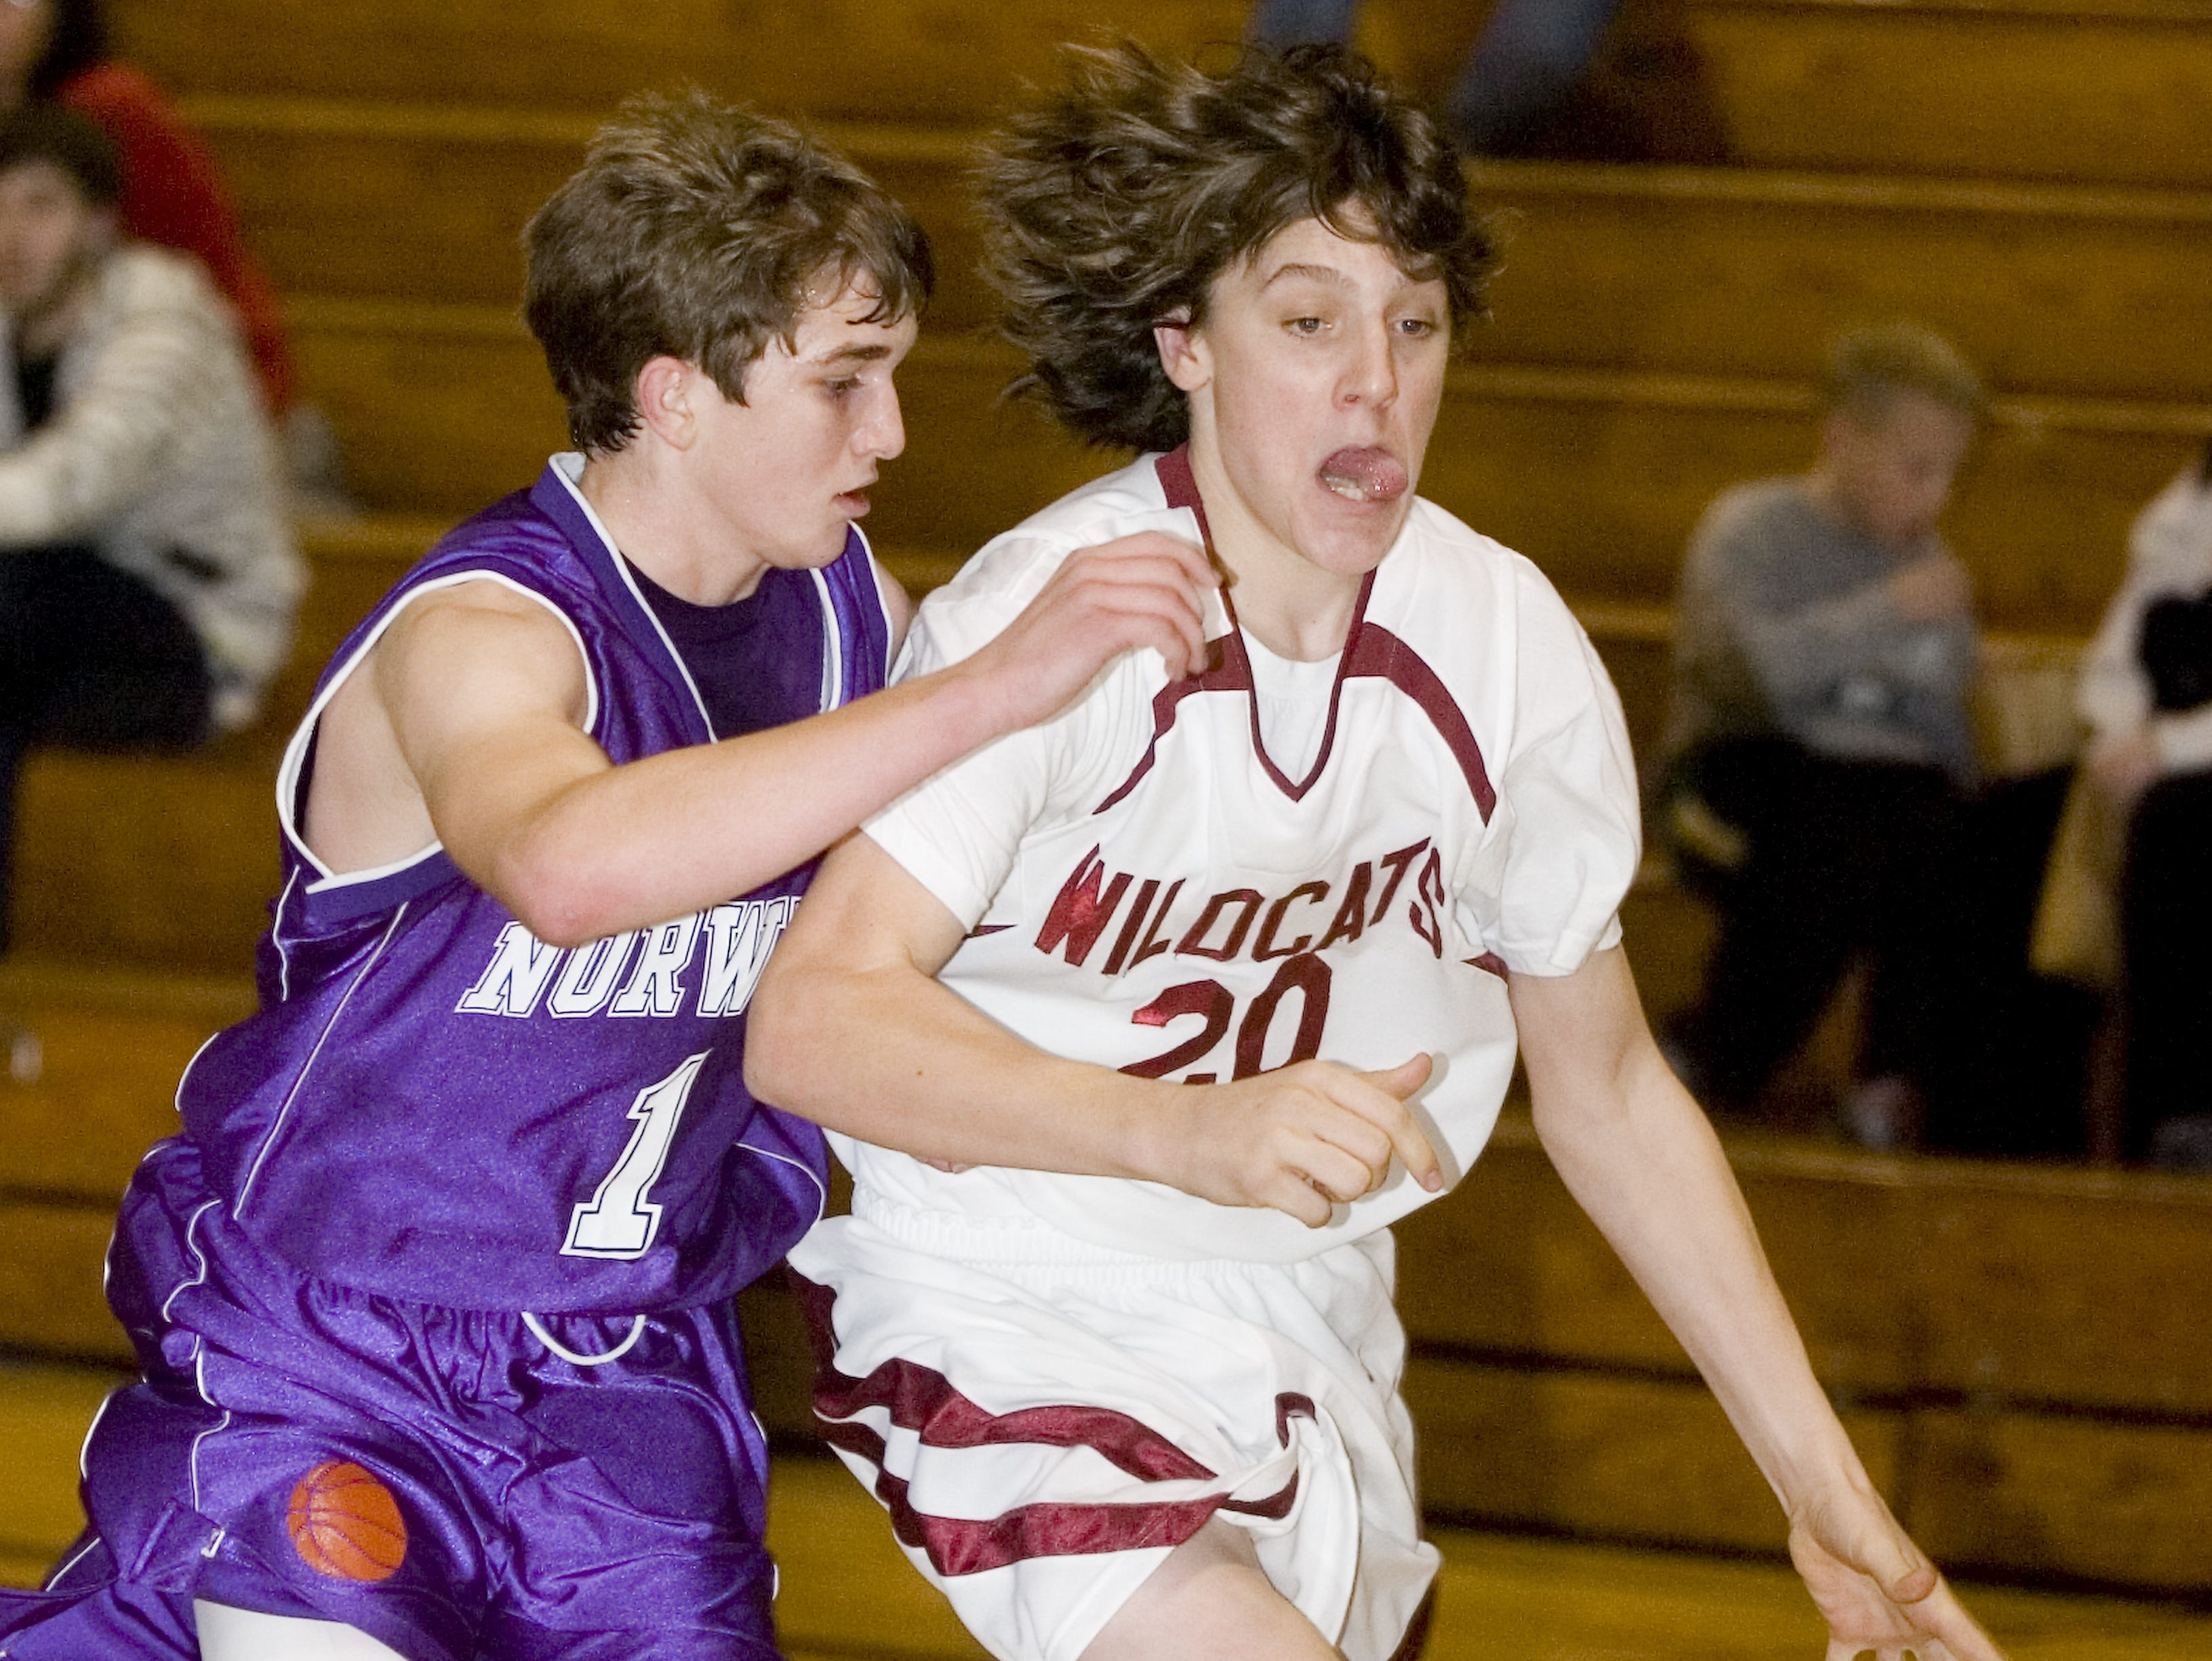 2005: Johnson City High School's Branden Kuzel, right, works past Norwich High School's Timmy Clark in the first half of the Tuesday night game at Johnson City High School.